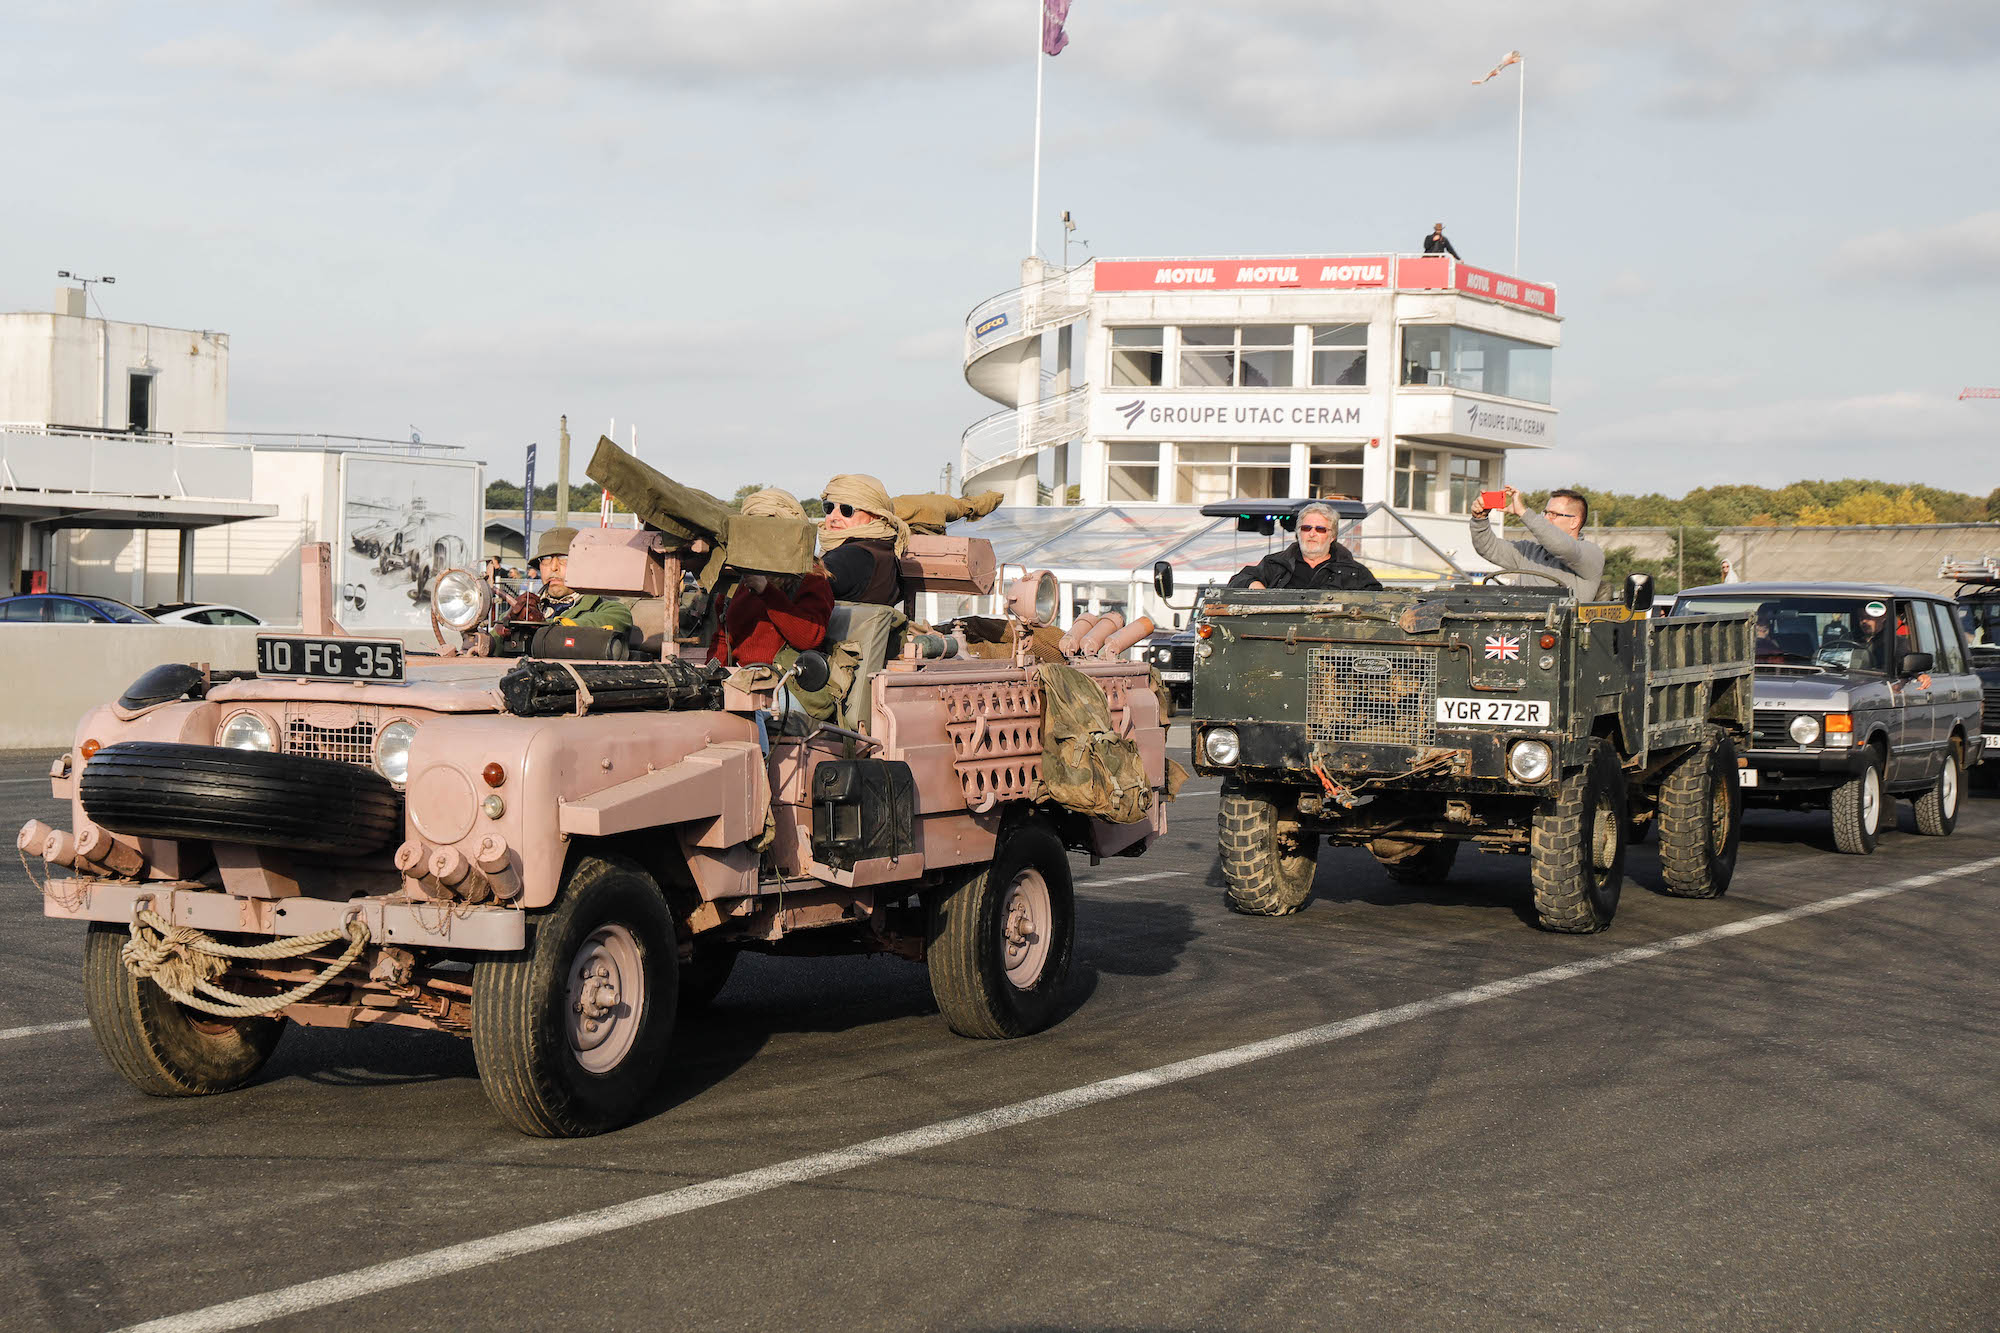 anciens modeles defender 2A Pink Panther militaire JLR Festival 2019 France